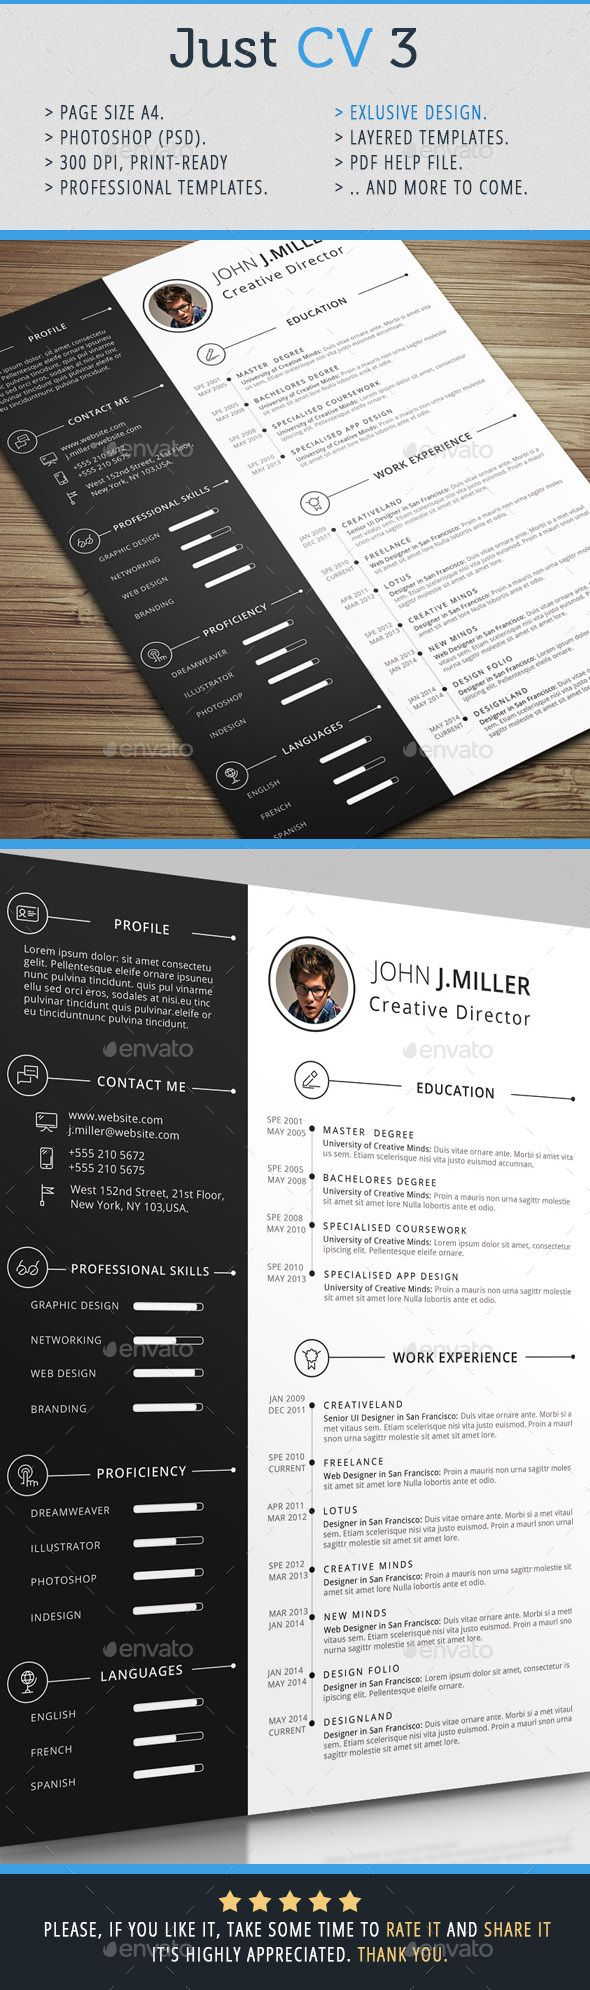 excellent resume formats%0A Resume Word Template Free Download